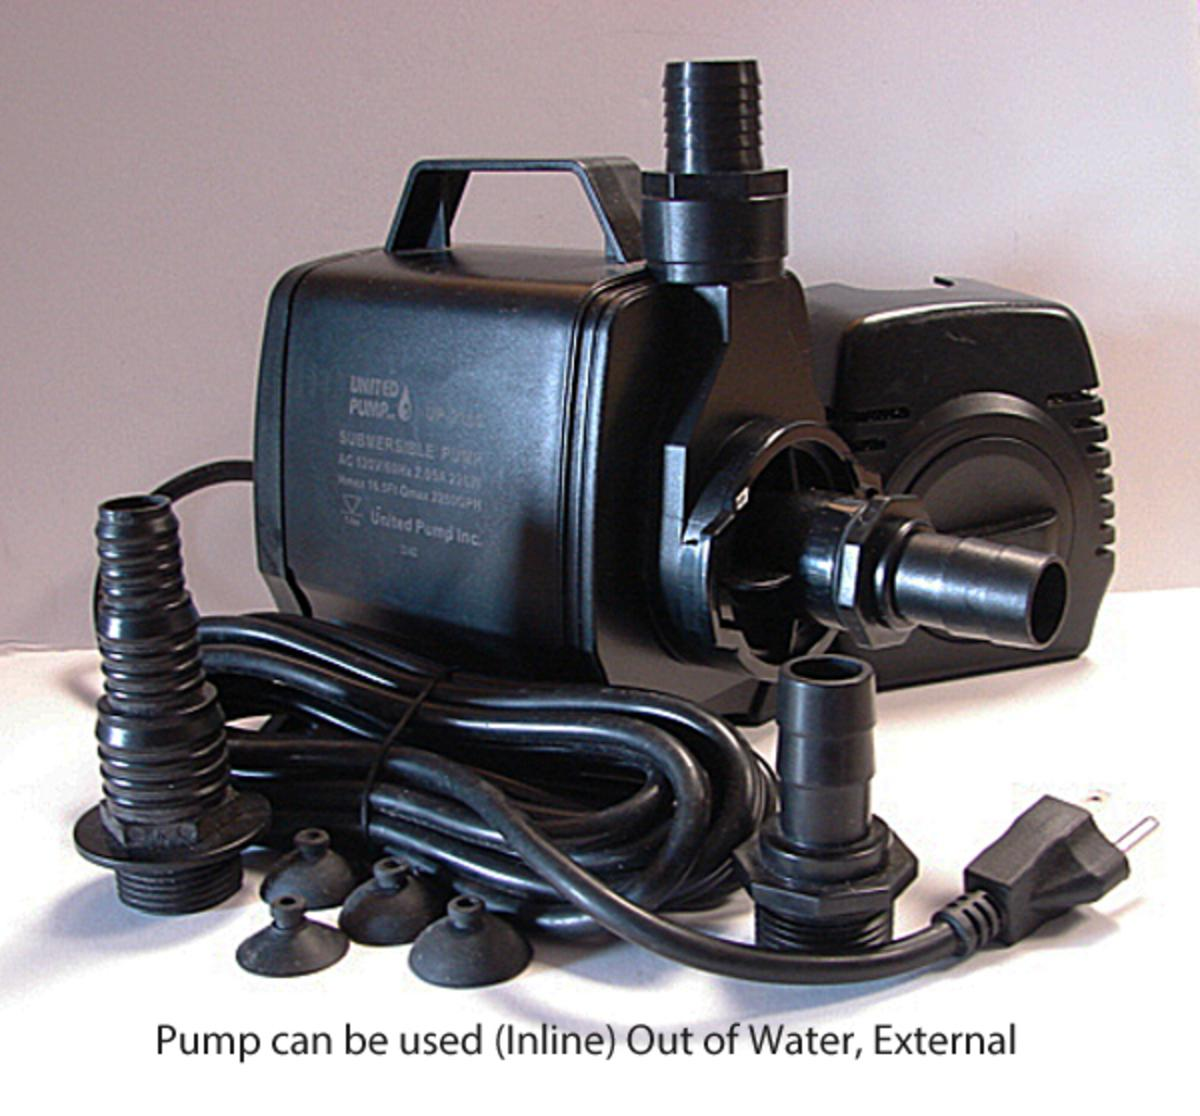 United UP-2160 Fountain Pump